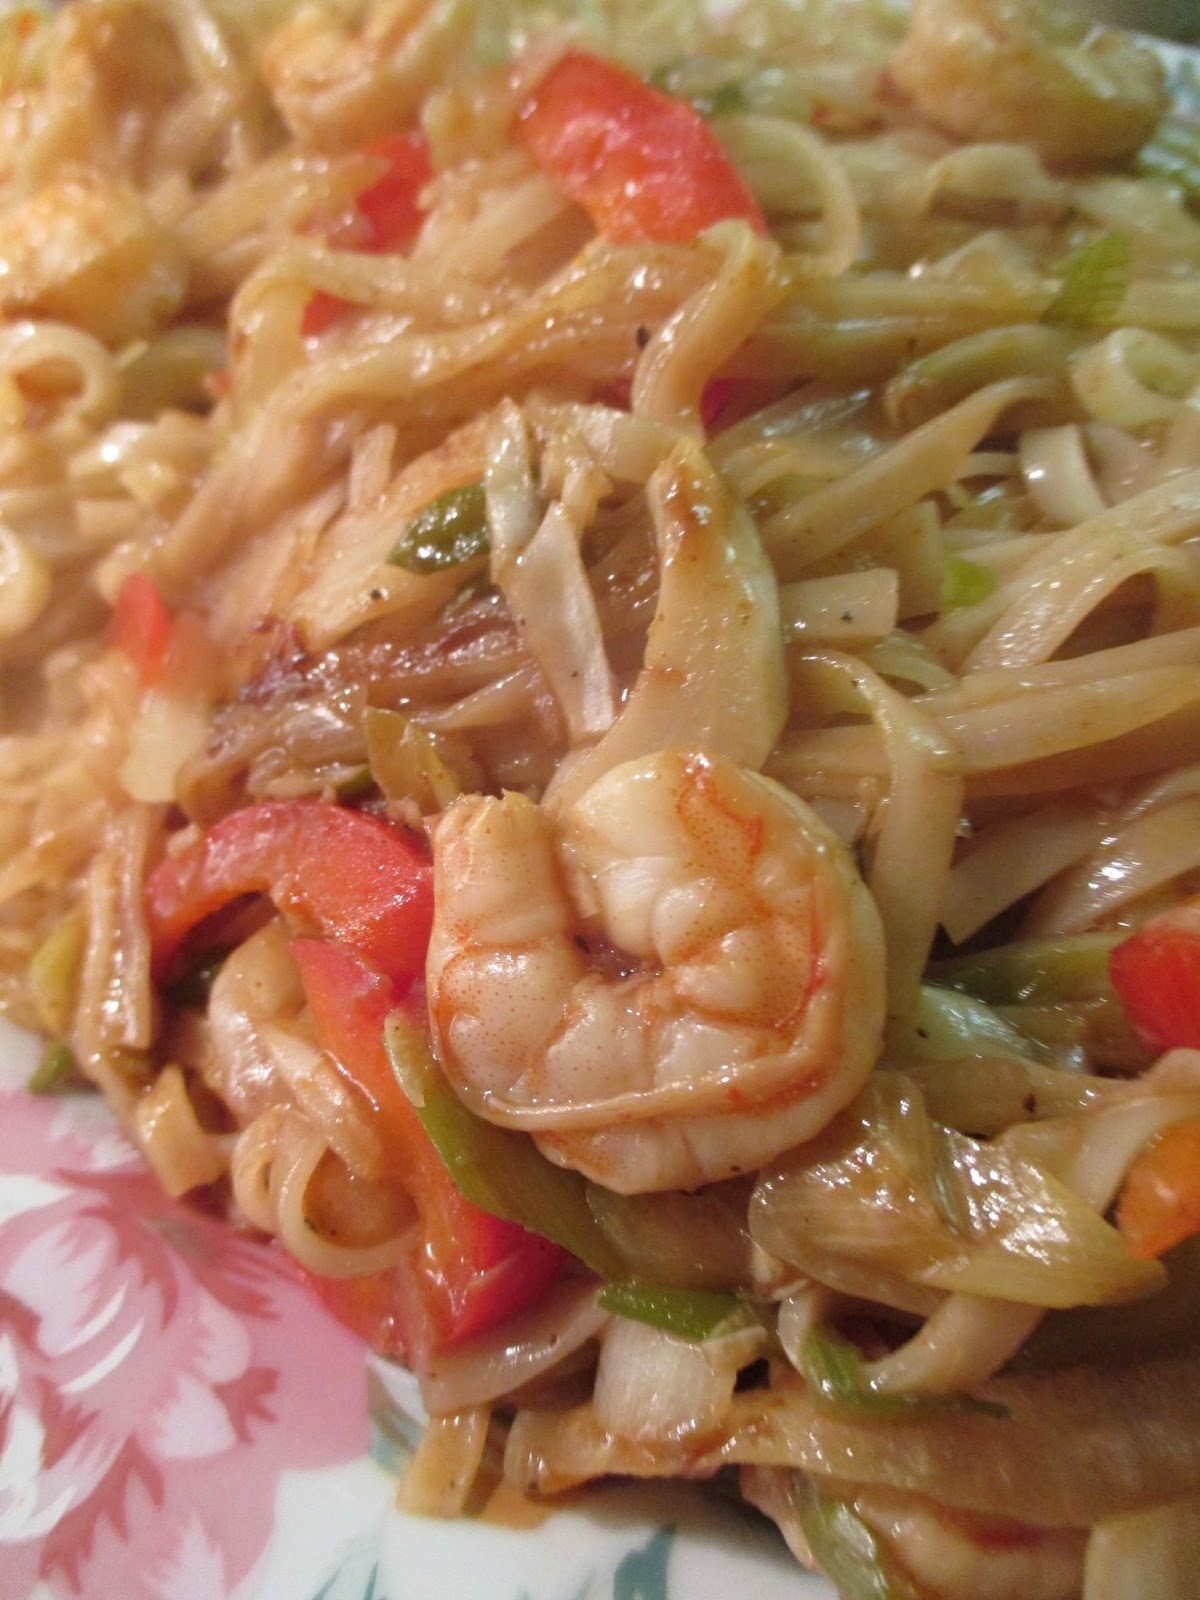 Hot and Cold Running Mom - Just my Stuff: Singapore Shrimp